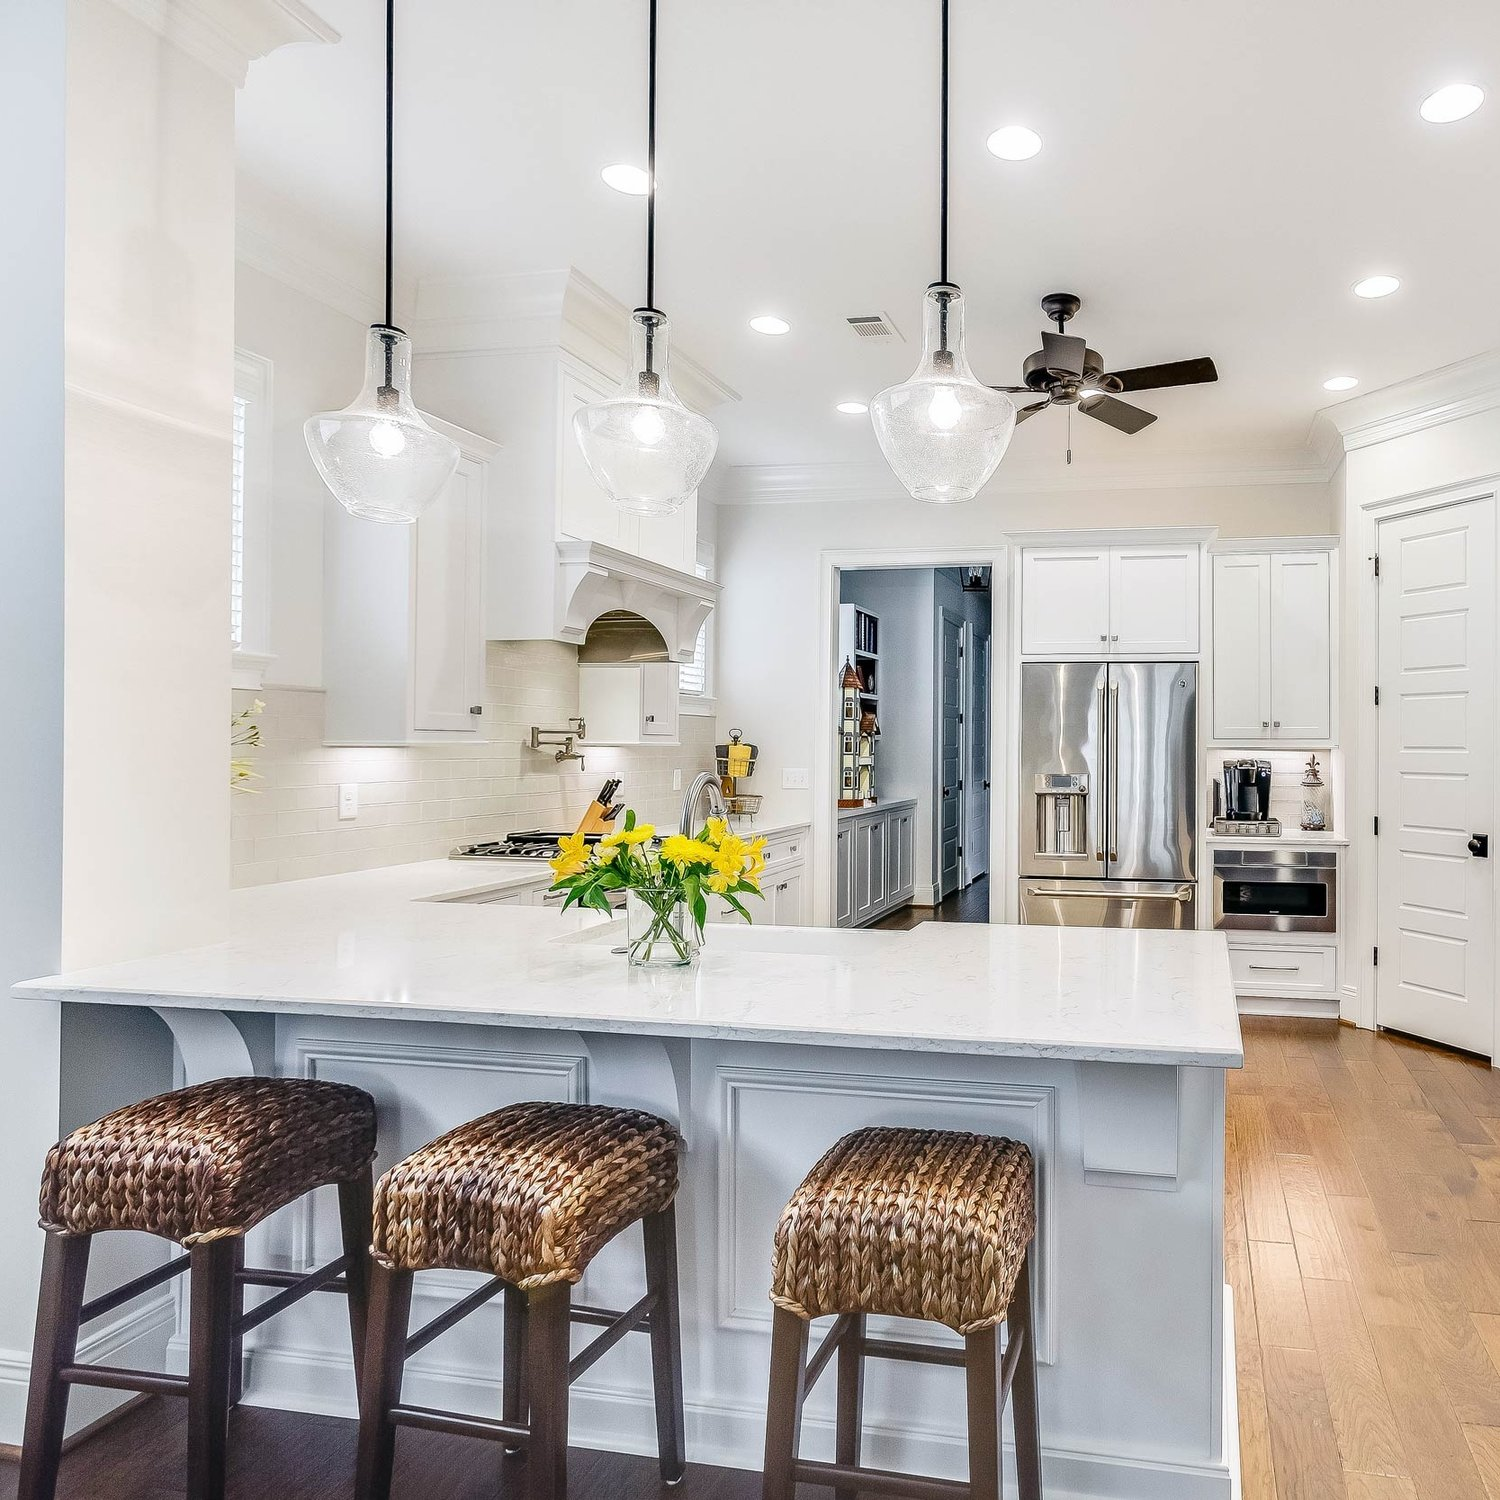 What Are The Estimated Kitchen Remodel Costs In Tuscaloosa Alabama Toulmin Cabinetry Design